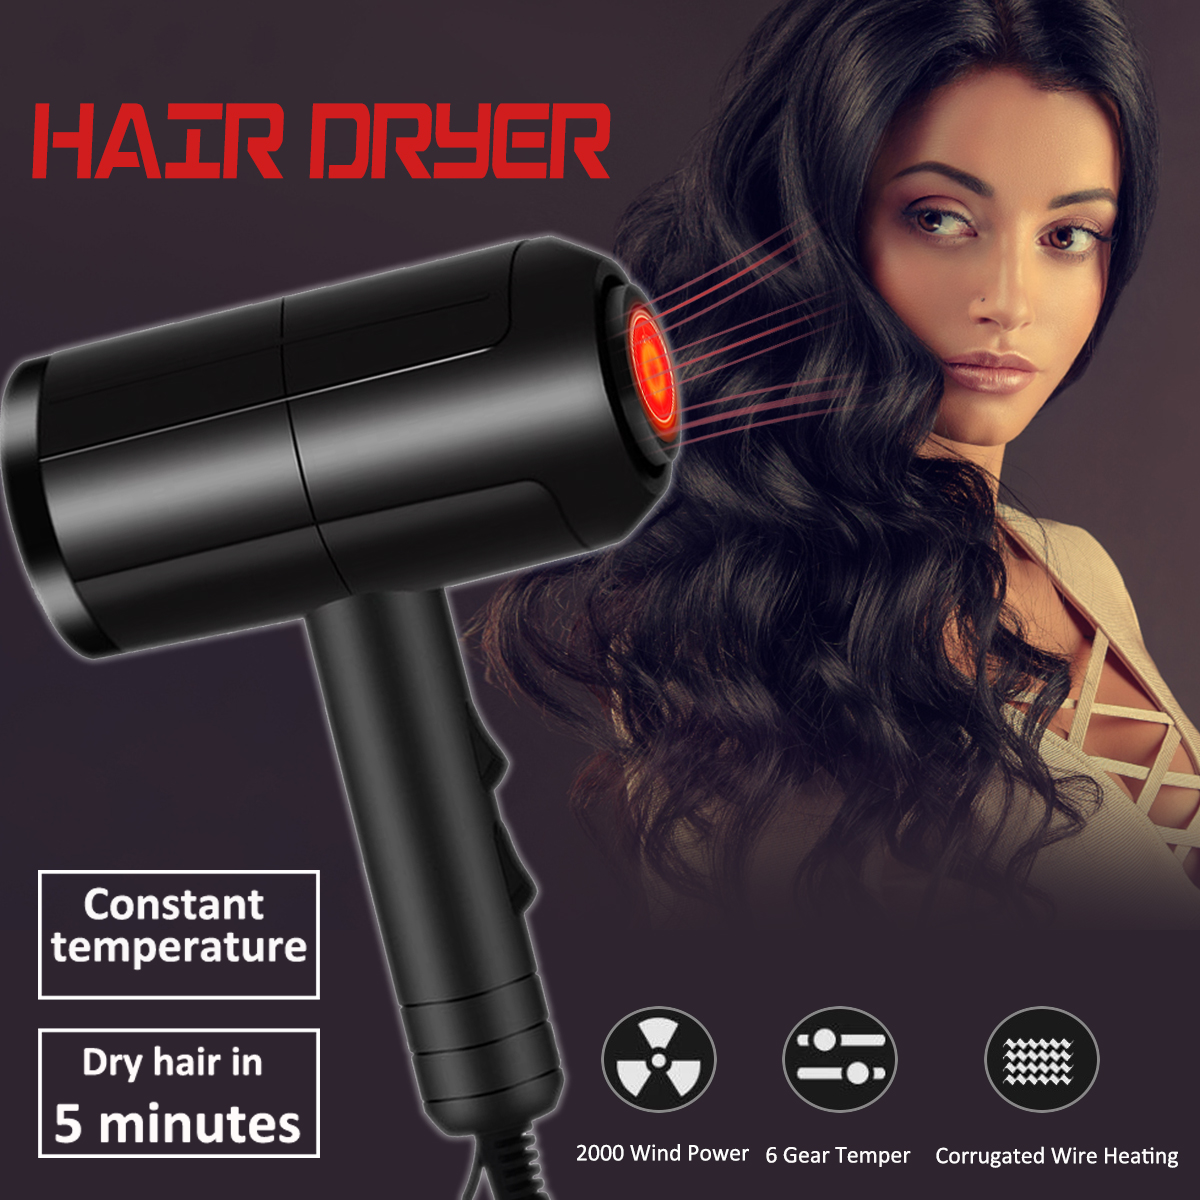 2000W Hairdressing Salon Electric Hair Dryer Constant Temperature Home Blower